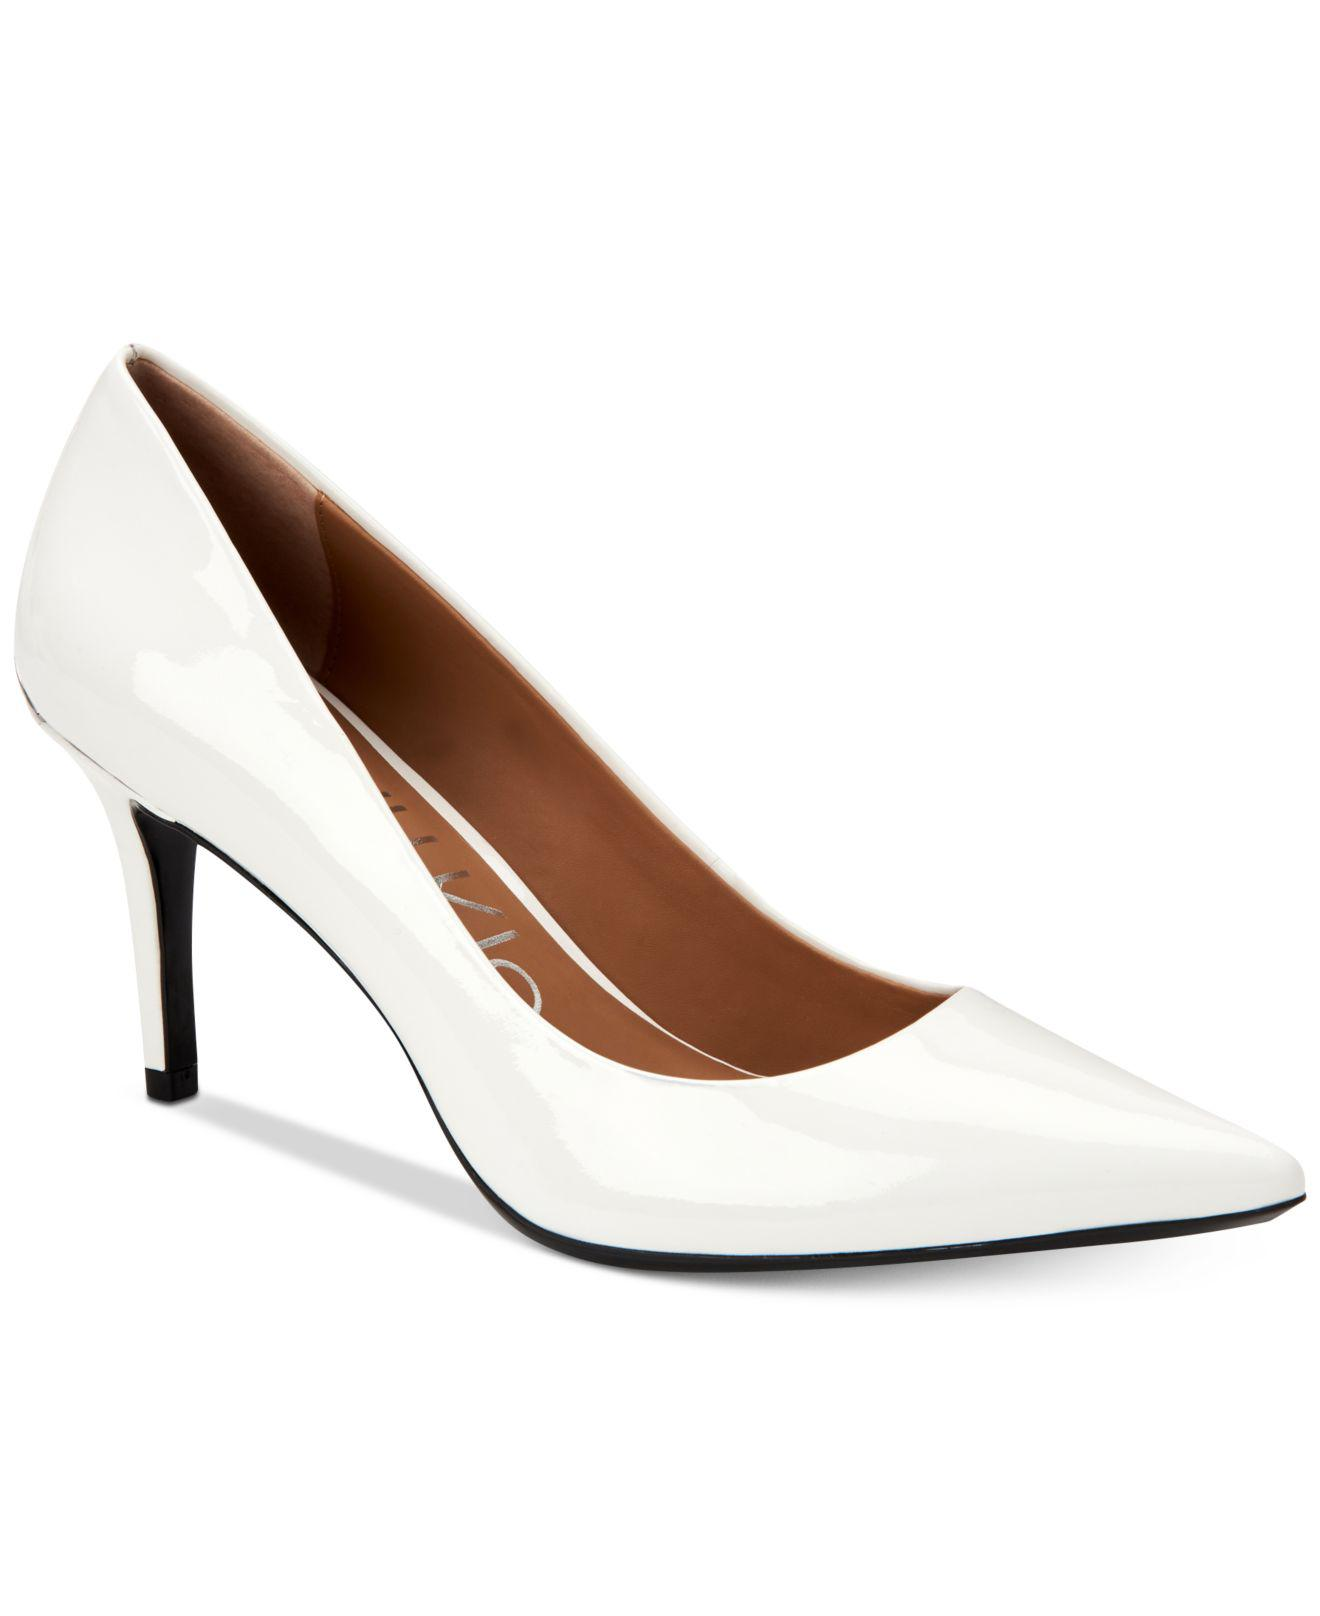 Calvin Klein Leather Gayle Pumps in